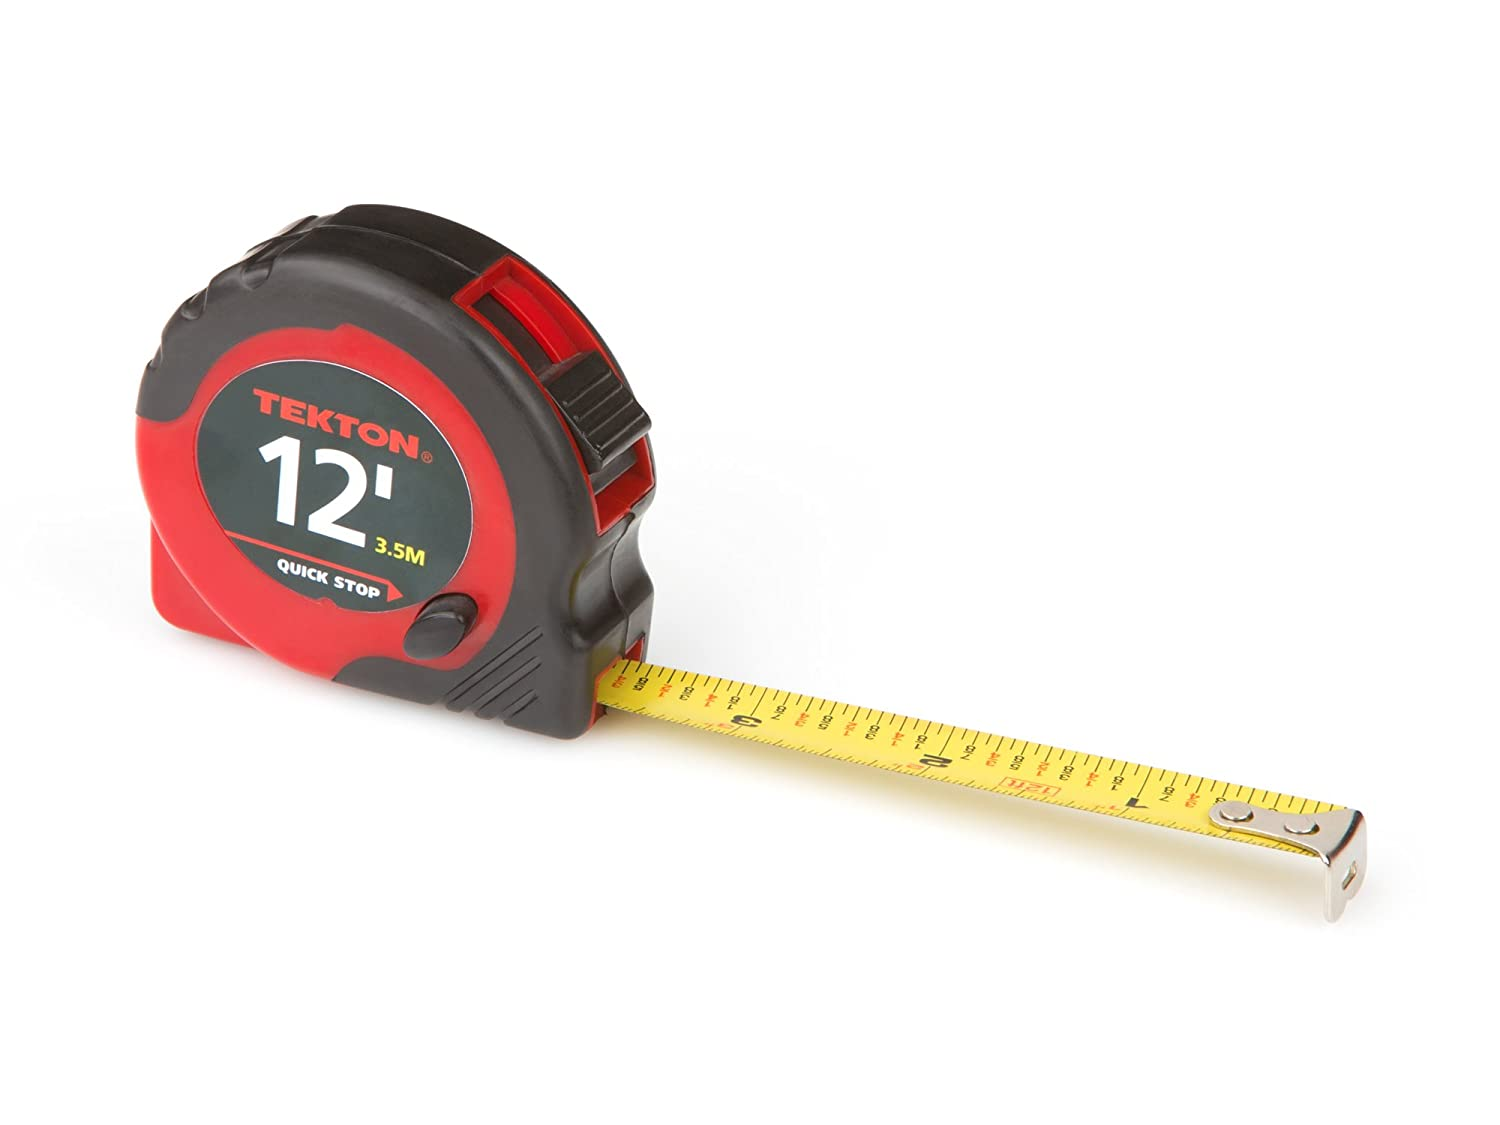 TEKTON 71951 12 Foot by 1 2 Inch Tape Measure